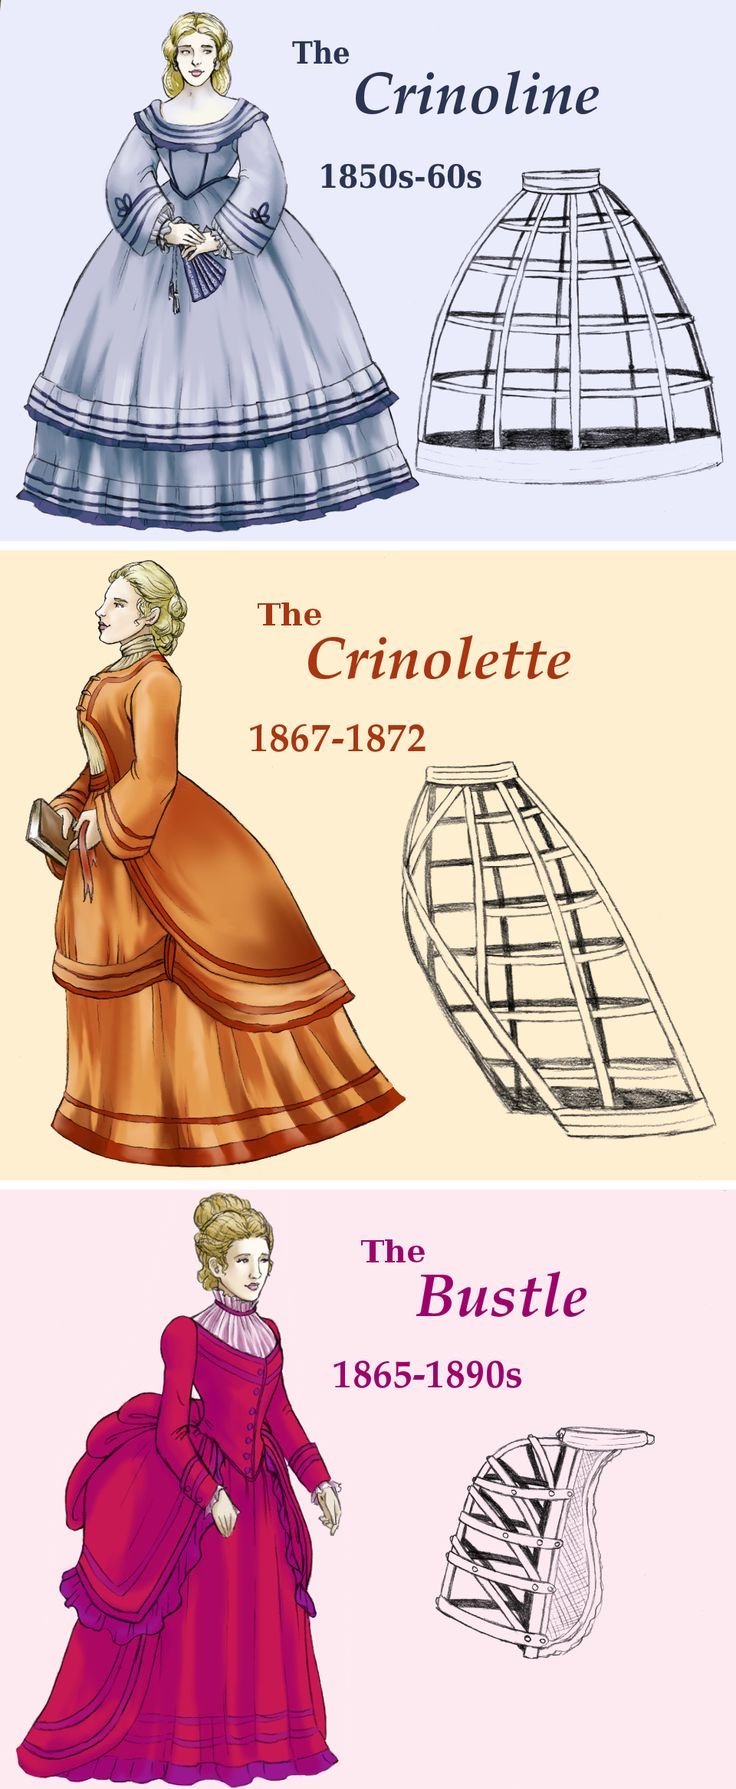 1763 Best Images About Historical Clothing 1800 39 S On Pinterest Day Dresses The Collection And